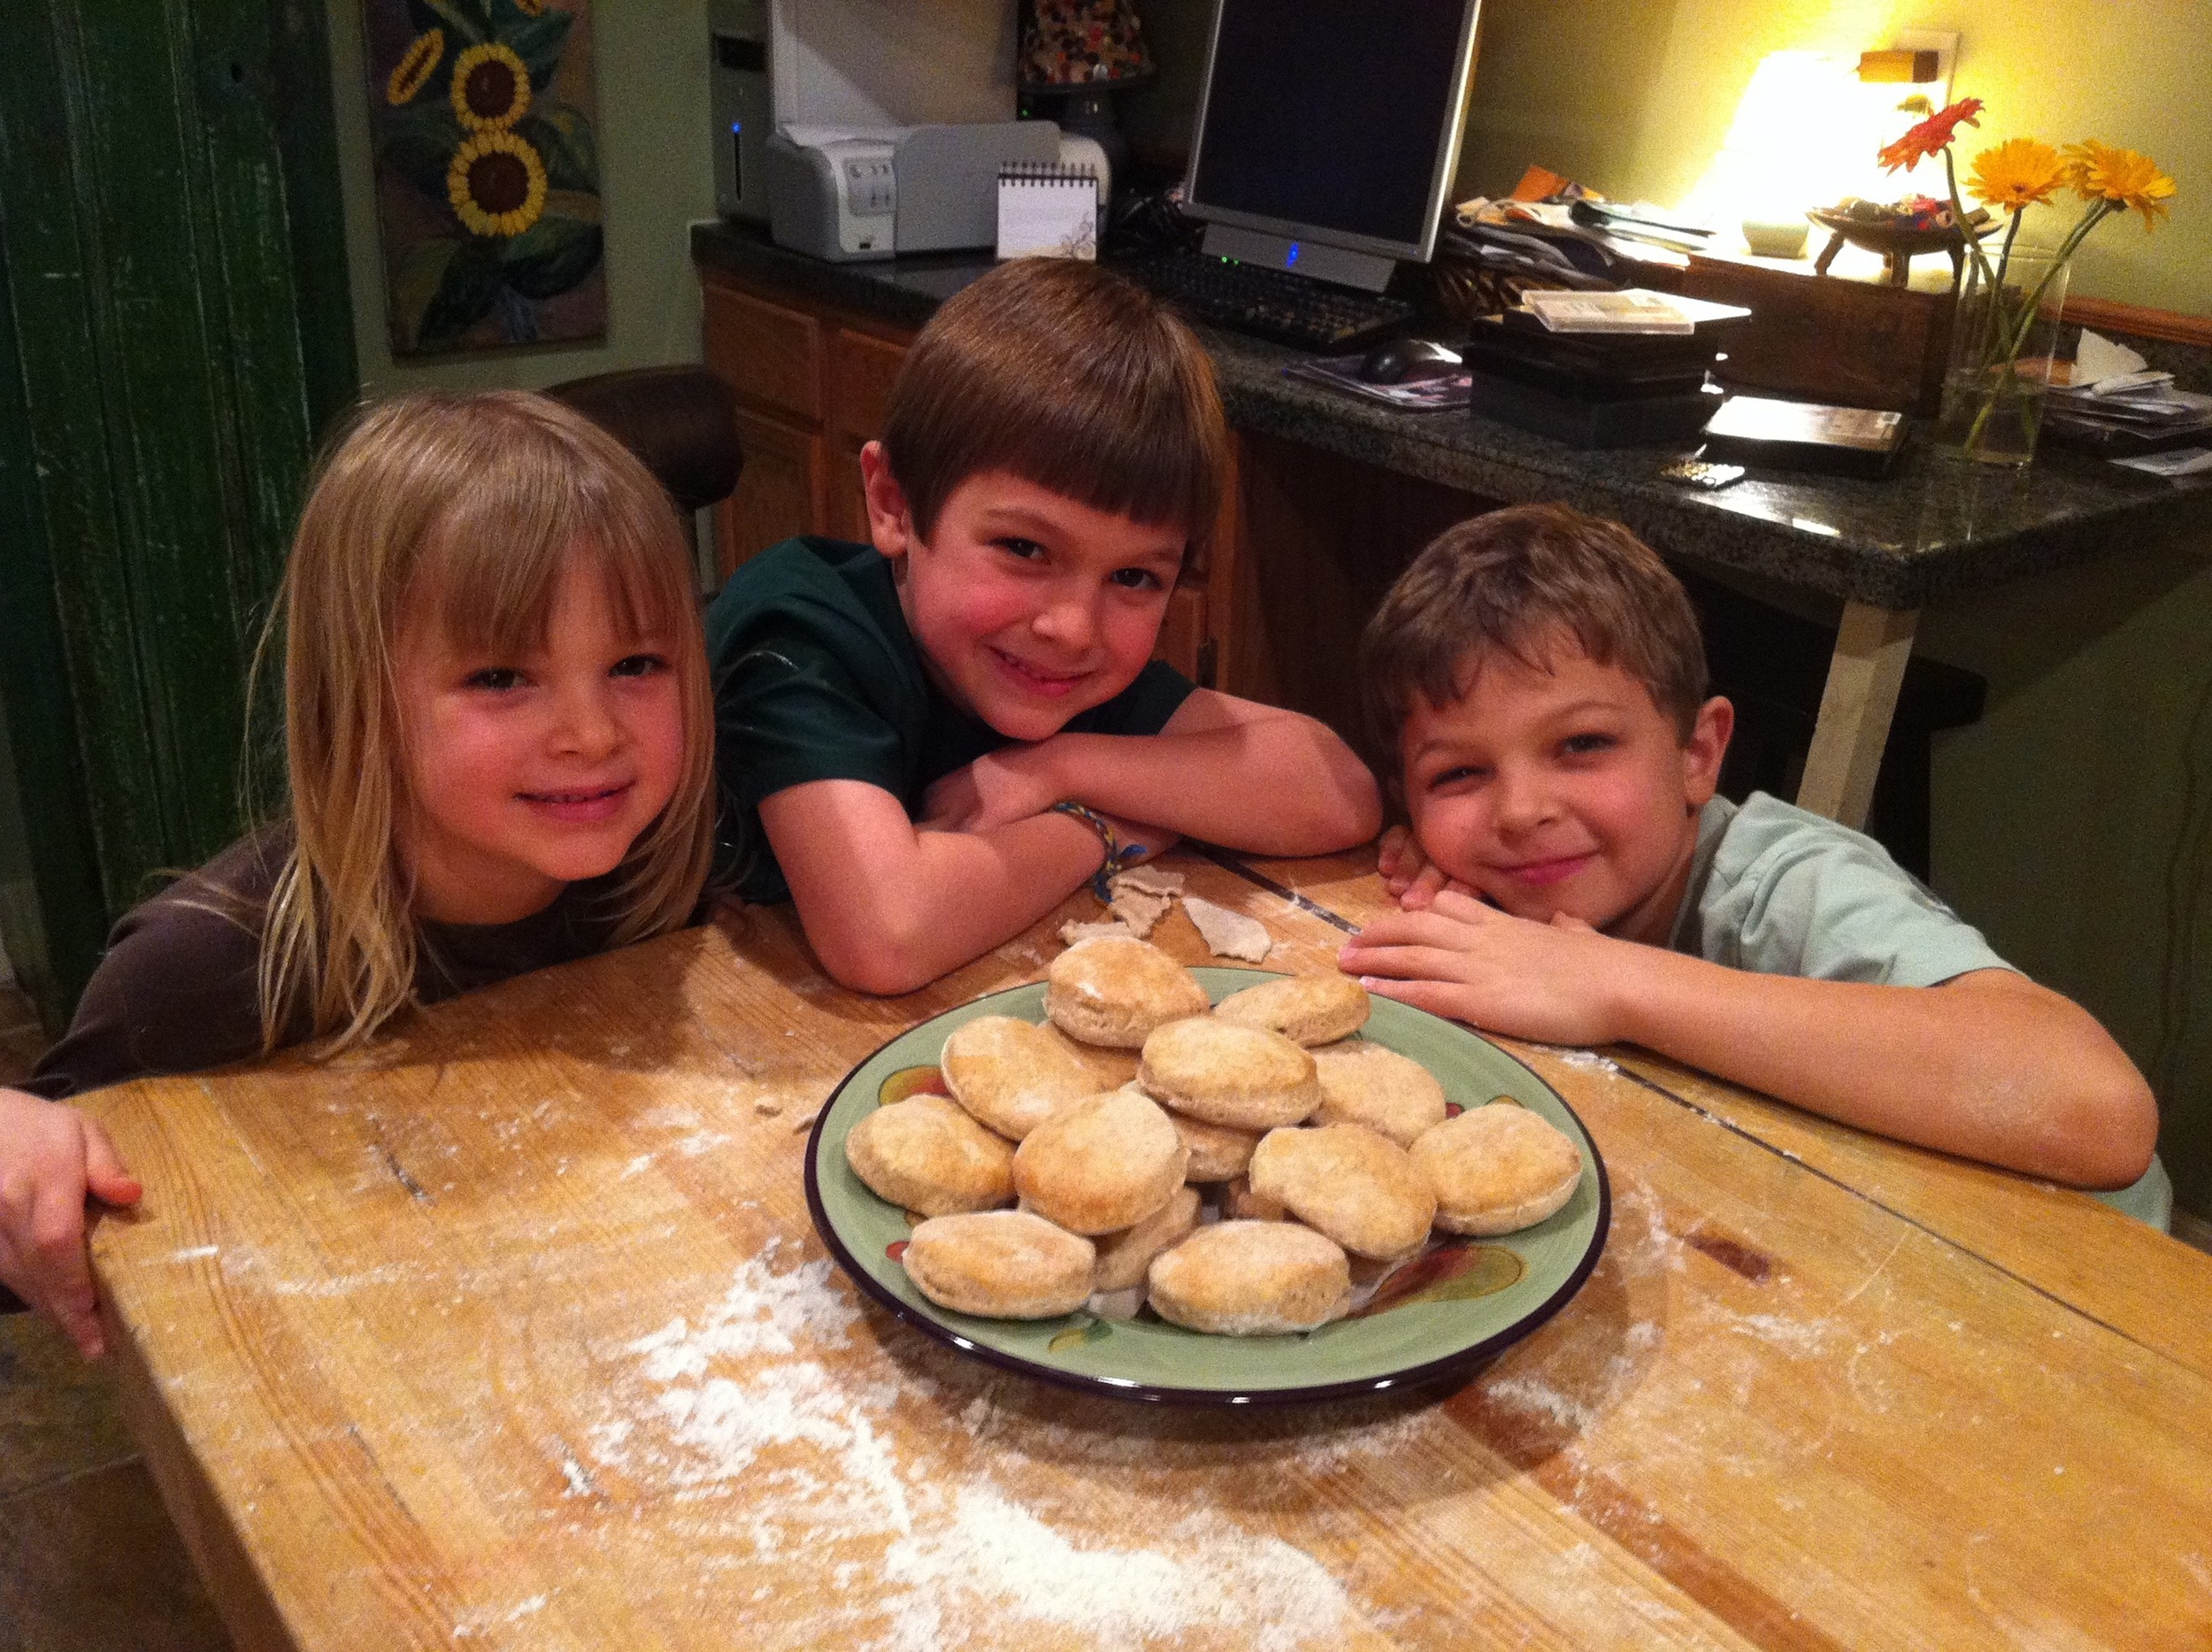 my kids displaying their baking skills